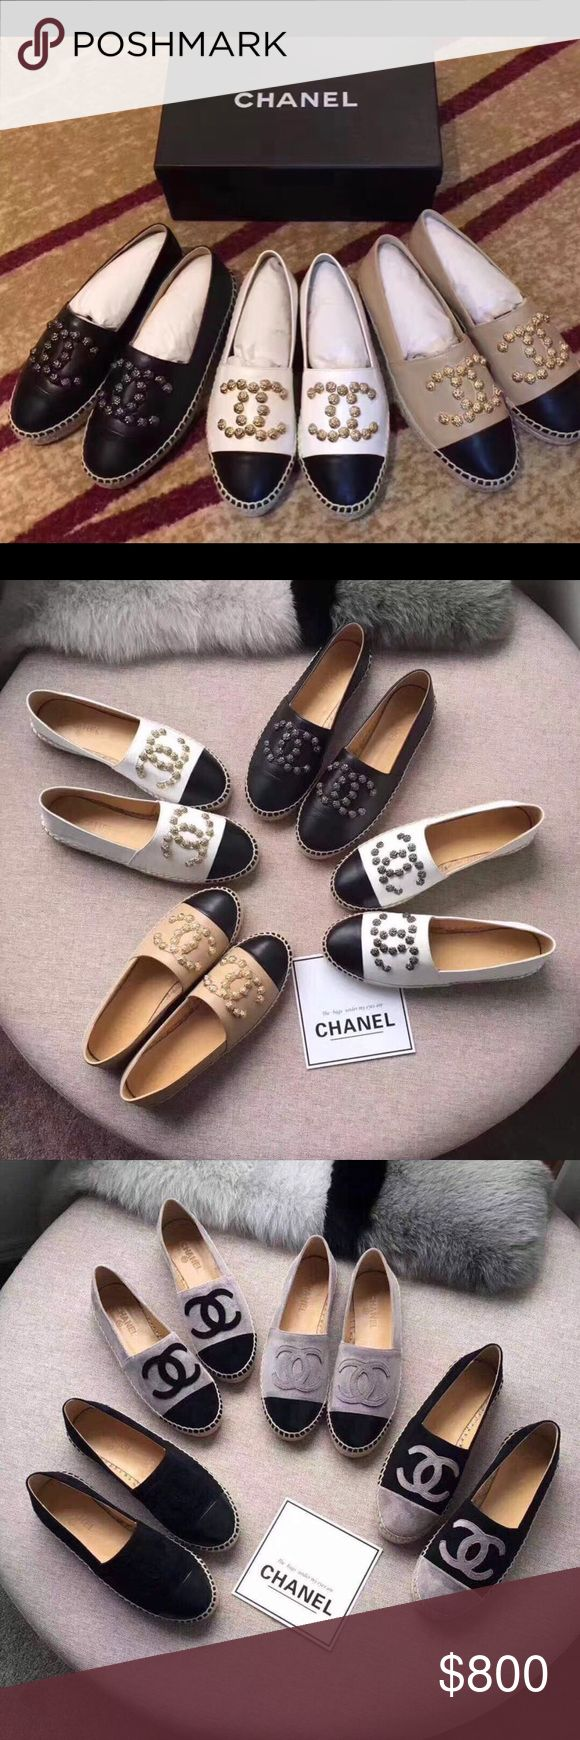 Chanel Espadrilles different colors sizes Sale by orders only. Chanel Espadrilles different sizes colors and styles. If interesting contact at eligirl1508@gmail.com I won't answer any question by here. CHANEL Shoes Espadrilles